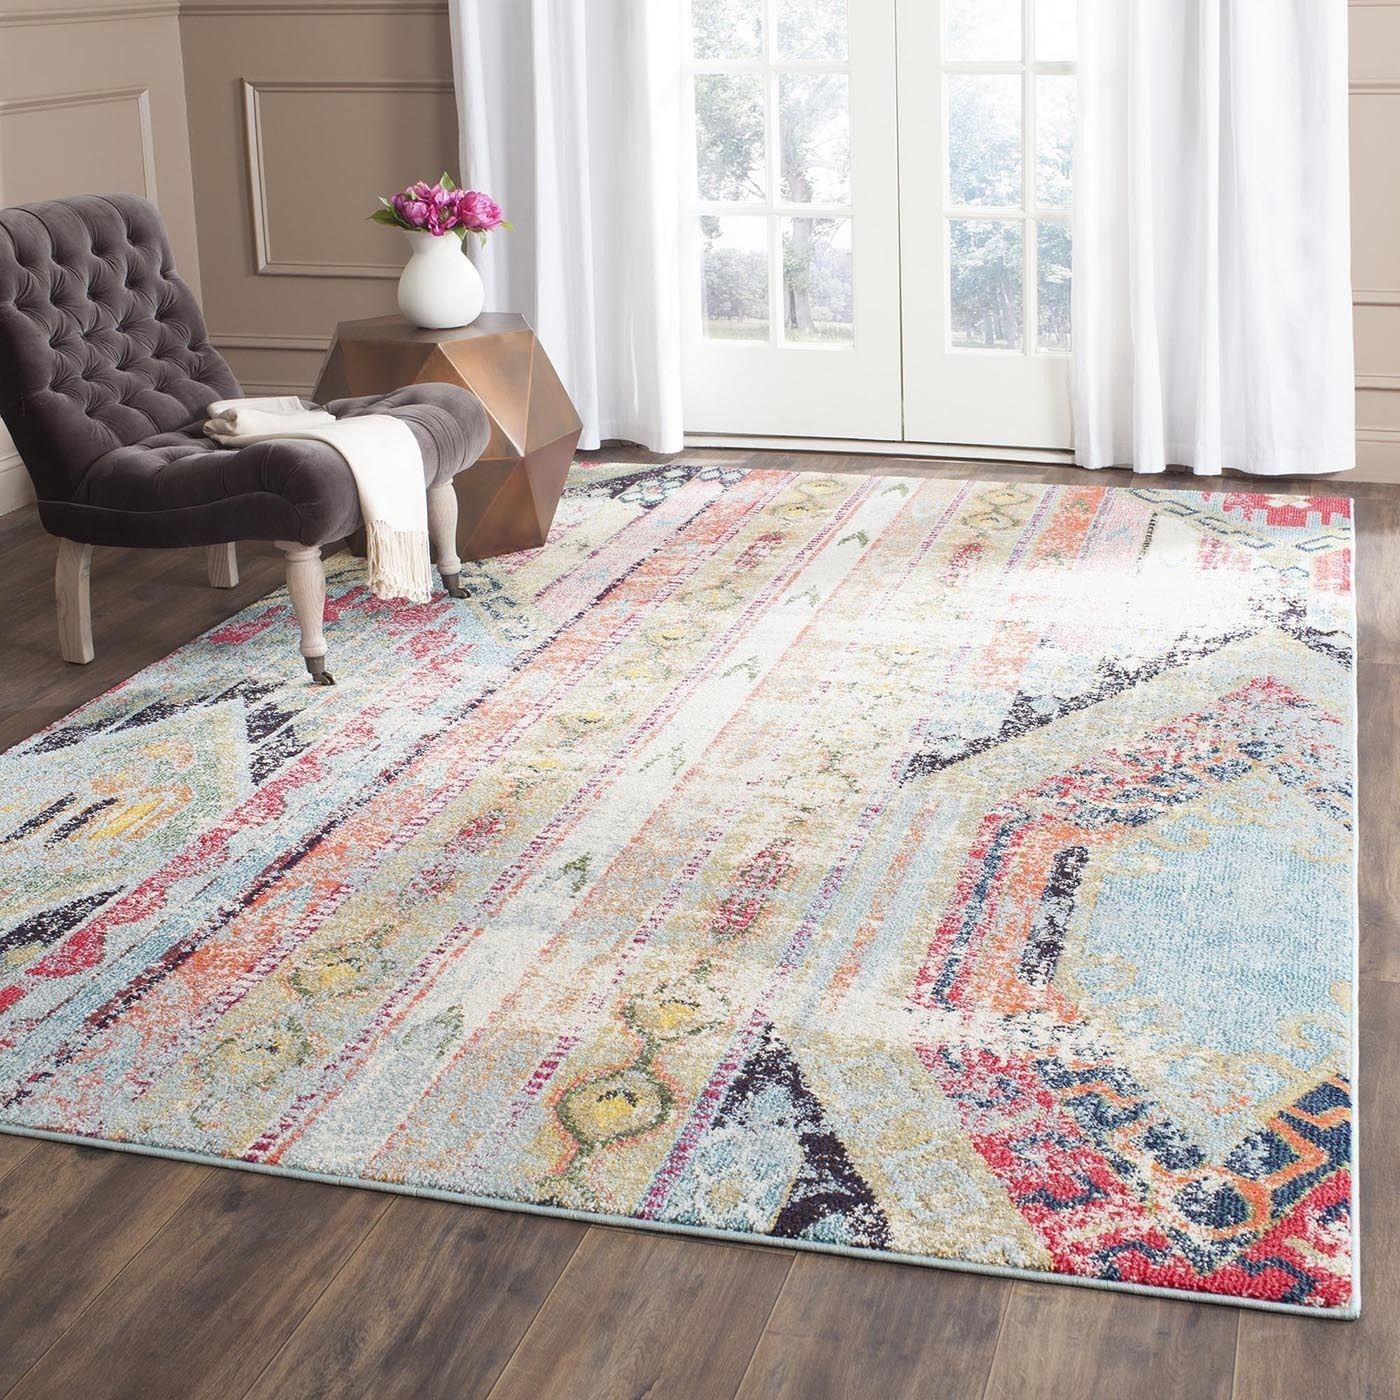 5x8 6x9 Rugs For Less Safavieh